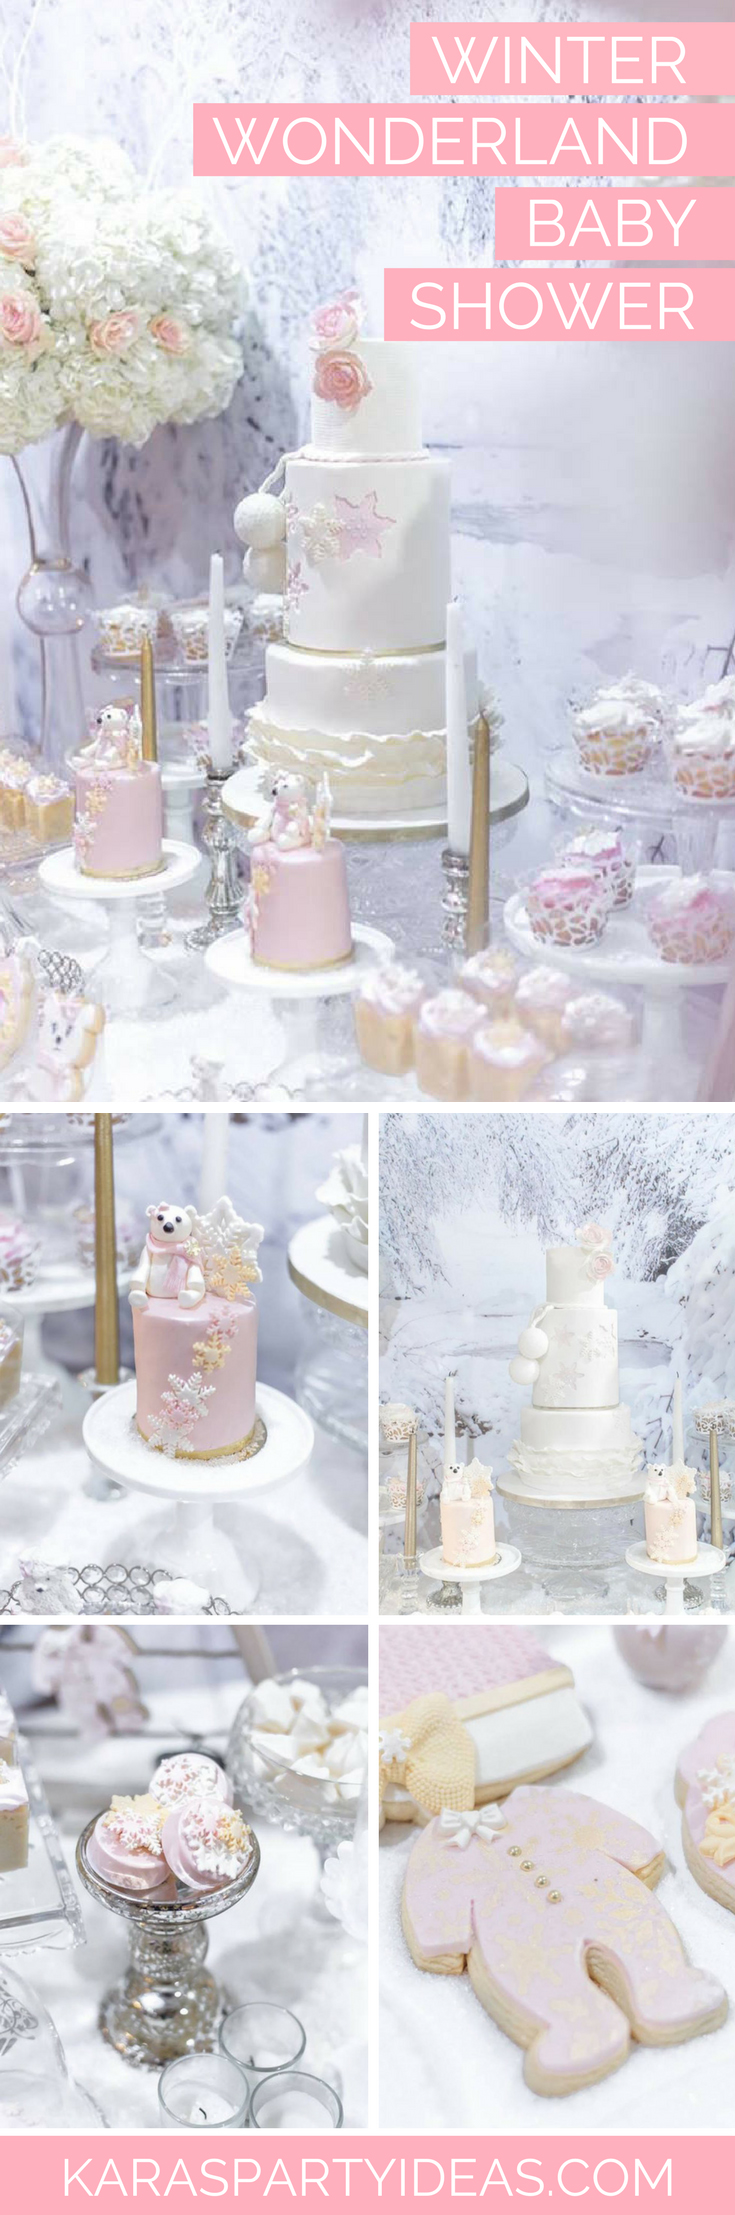 Decoration Ideas Baby Shower Girl Kara S Party Ideas Winter Wonderland Baby Shower Kara S Party Ideas